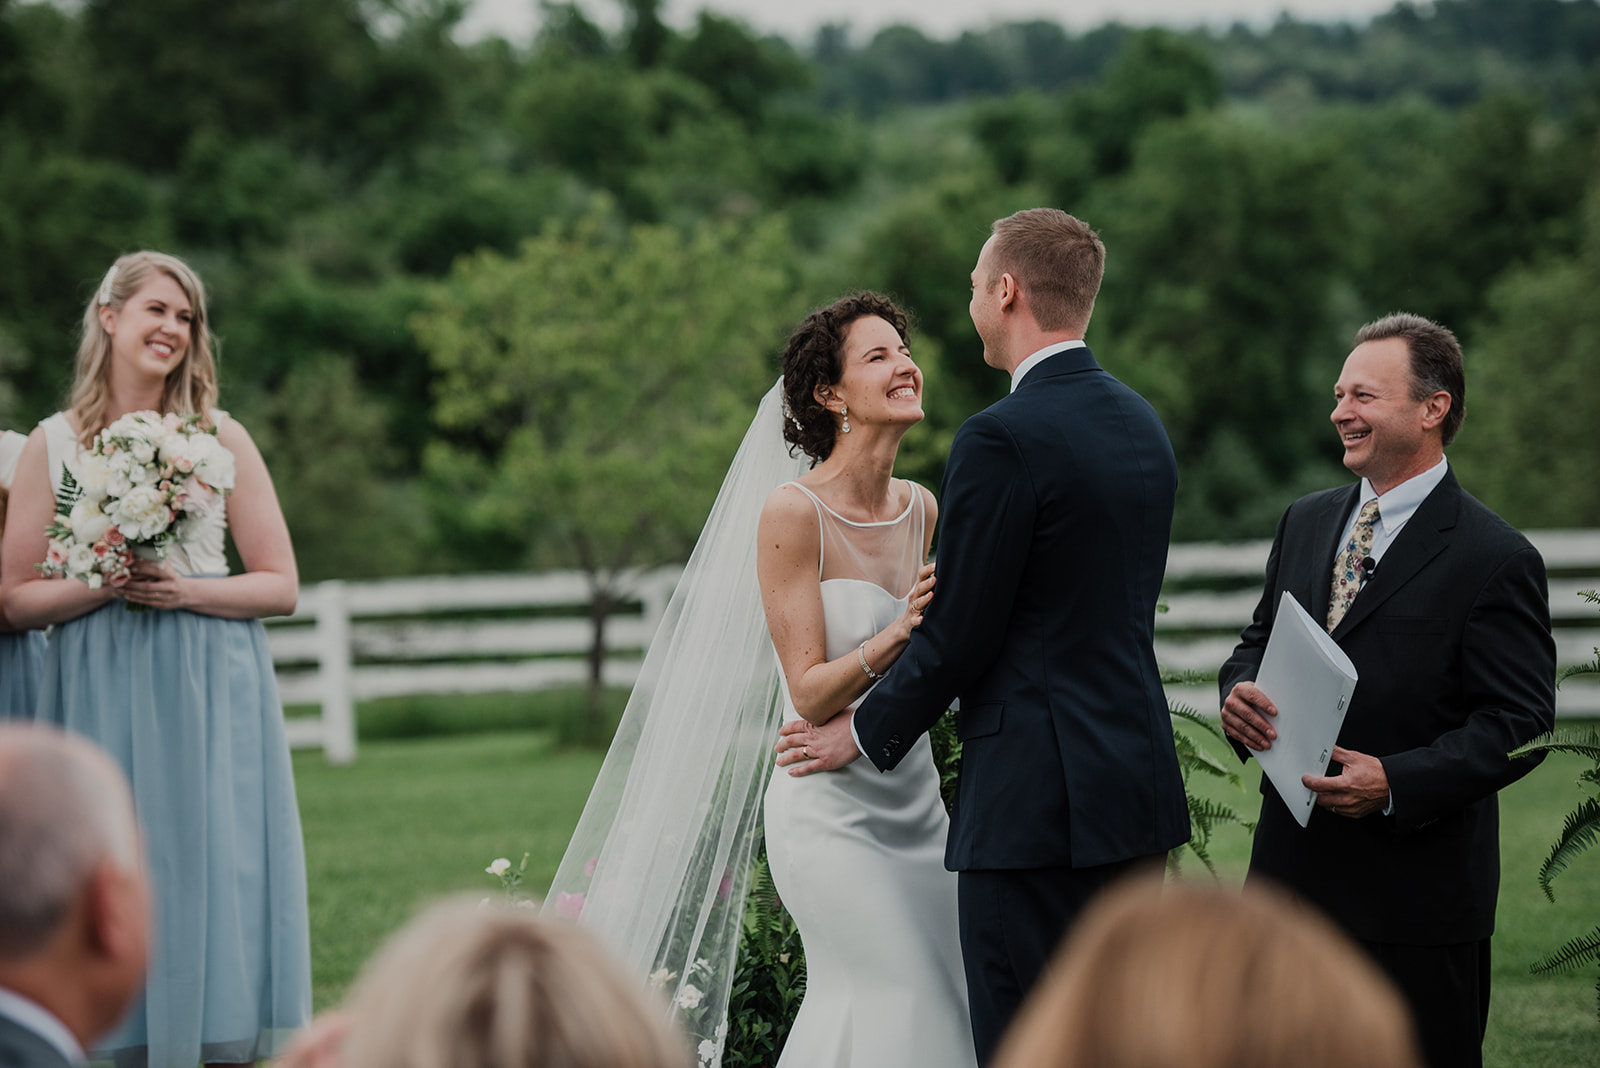 A newly pronounced husband and wife are all smiles during their outdoor wedding ceremony at Blue Hill Farm in Waterford, VA.